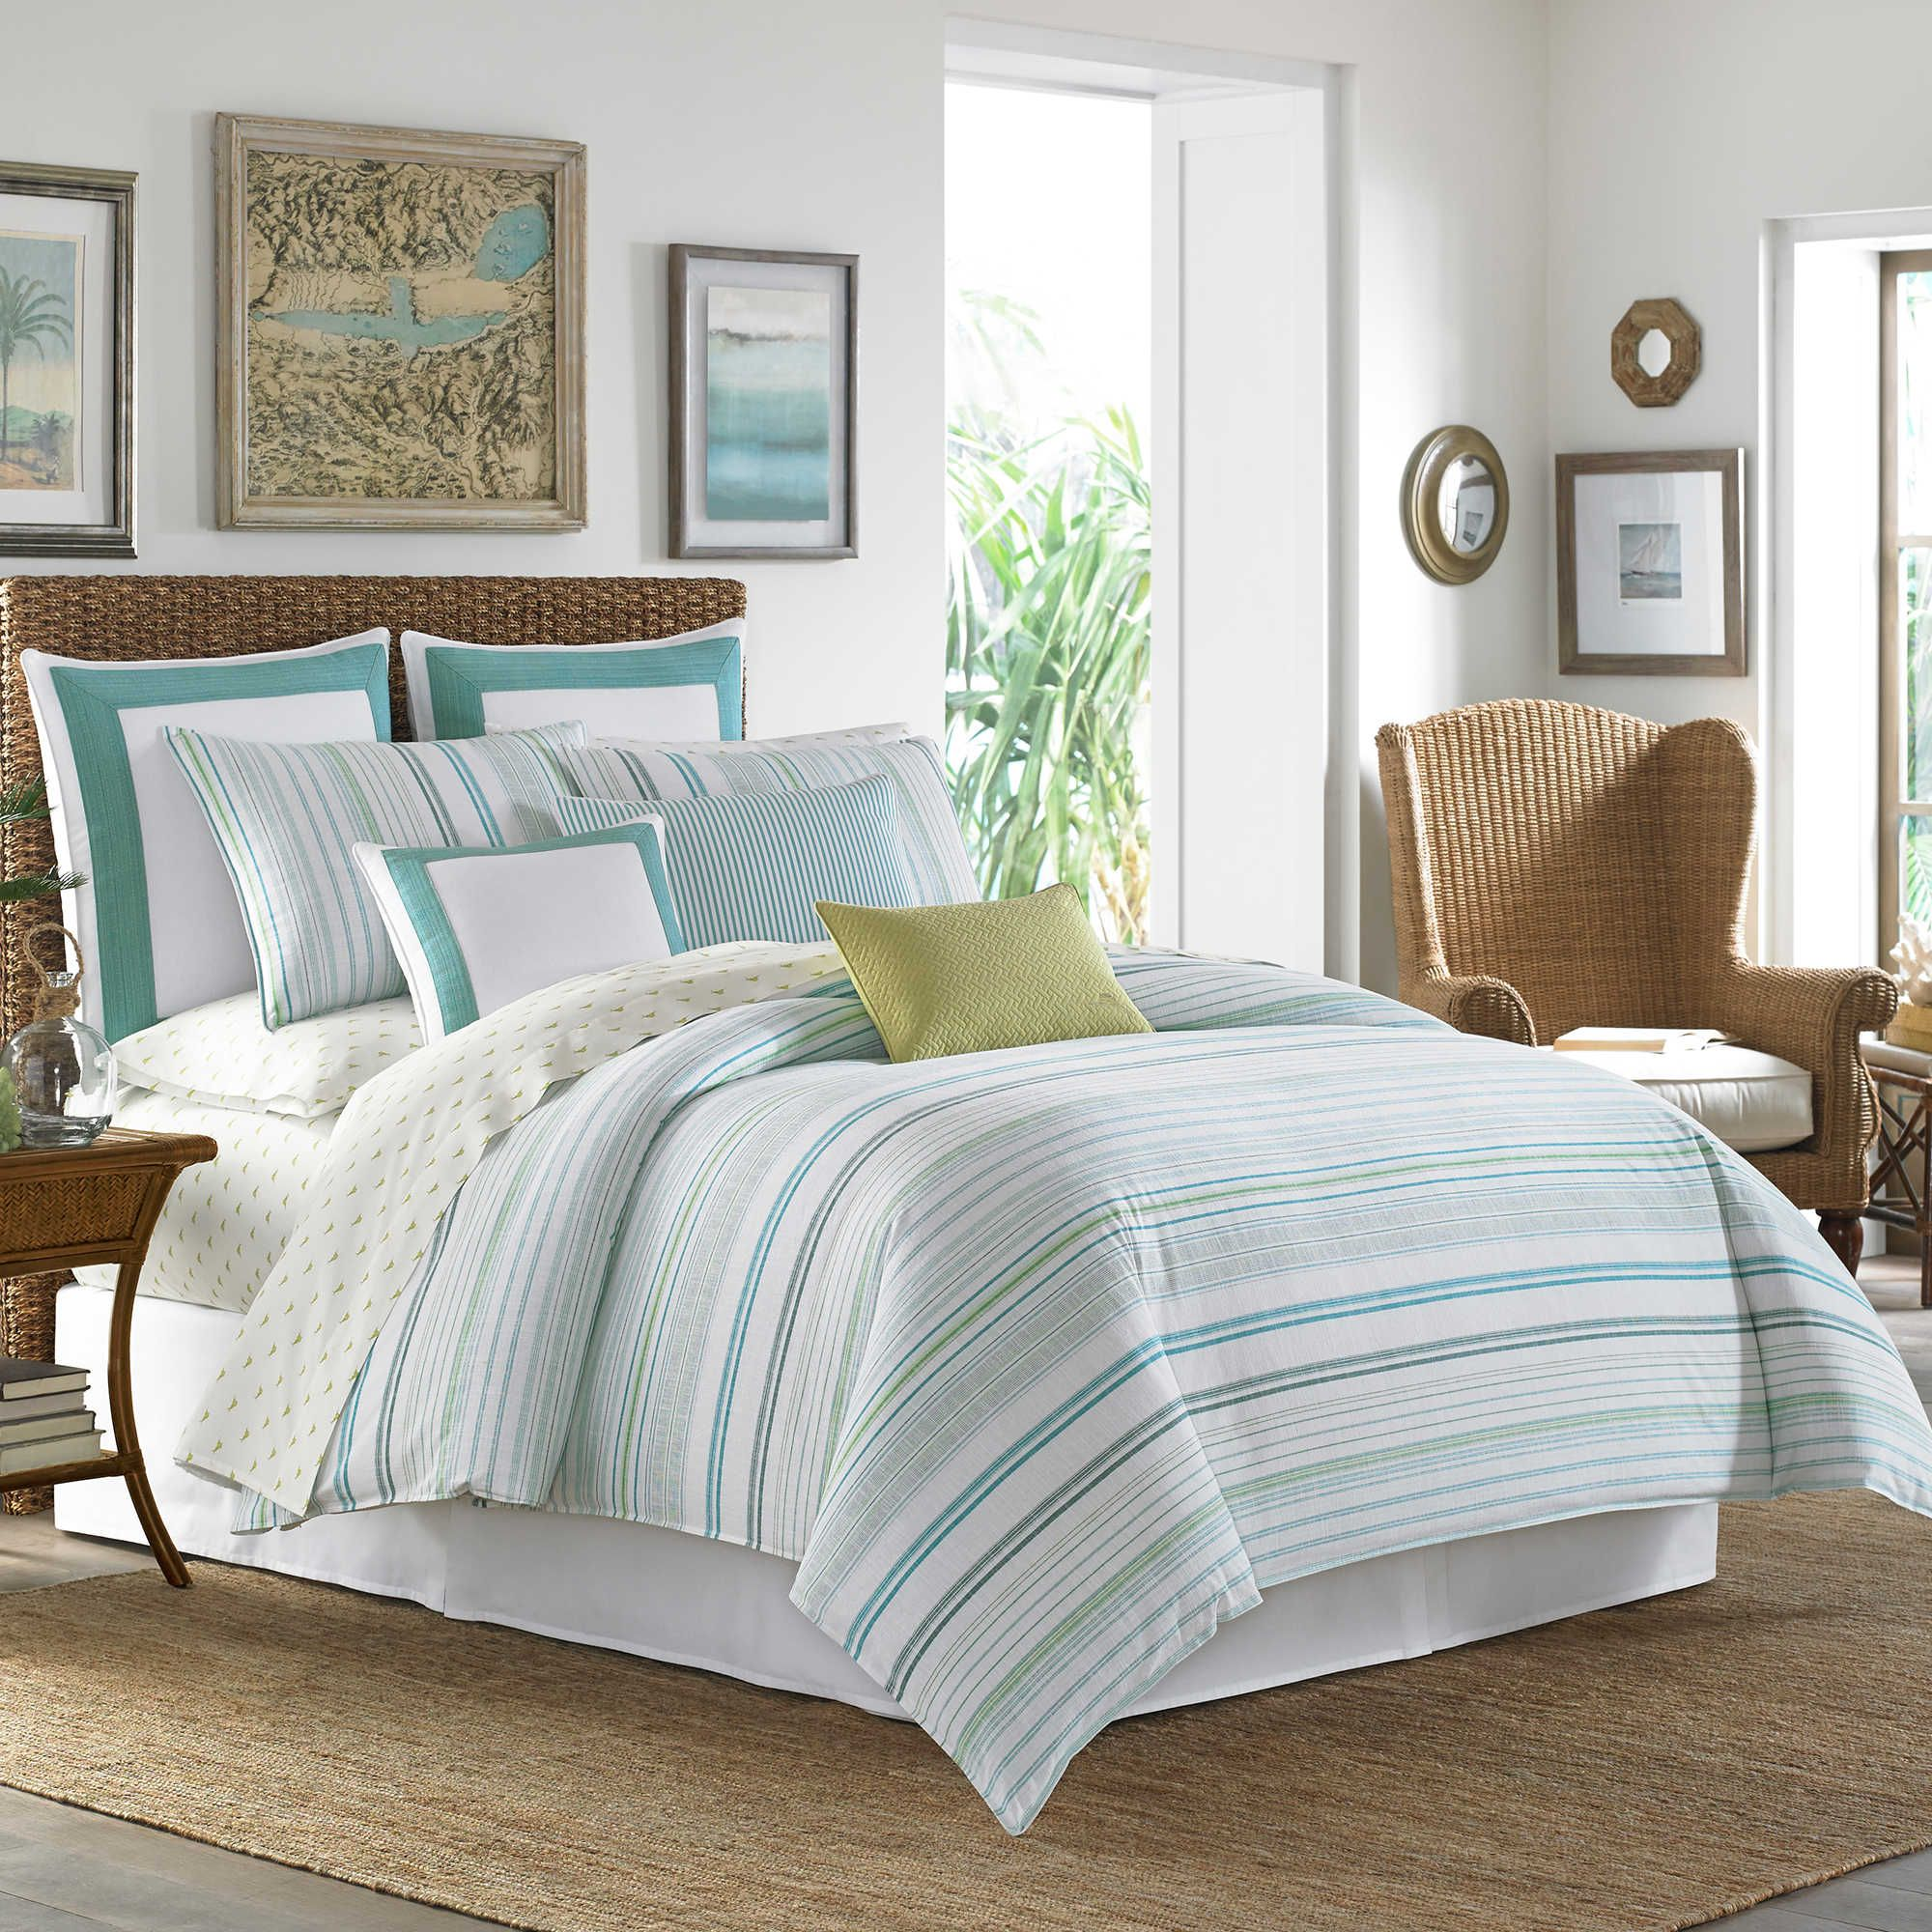 bahama duvet canada pillow online white single wonderful bedding sham size bright navy full and duvets the cover casual quilt theme red tommy of twin baseball comforter best linen piece design sheets set plaid cushion ideas designs king with doona blue bedroom sports covers